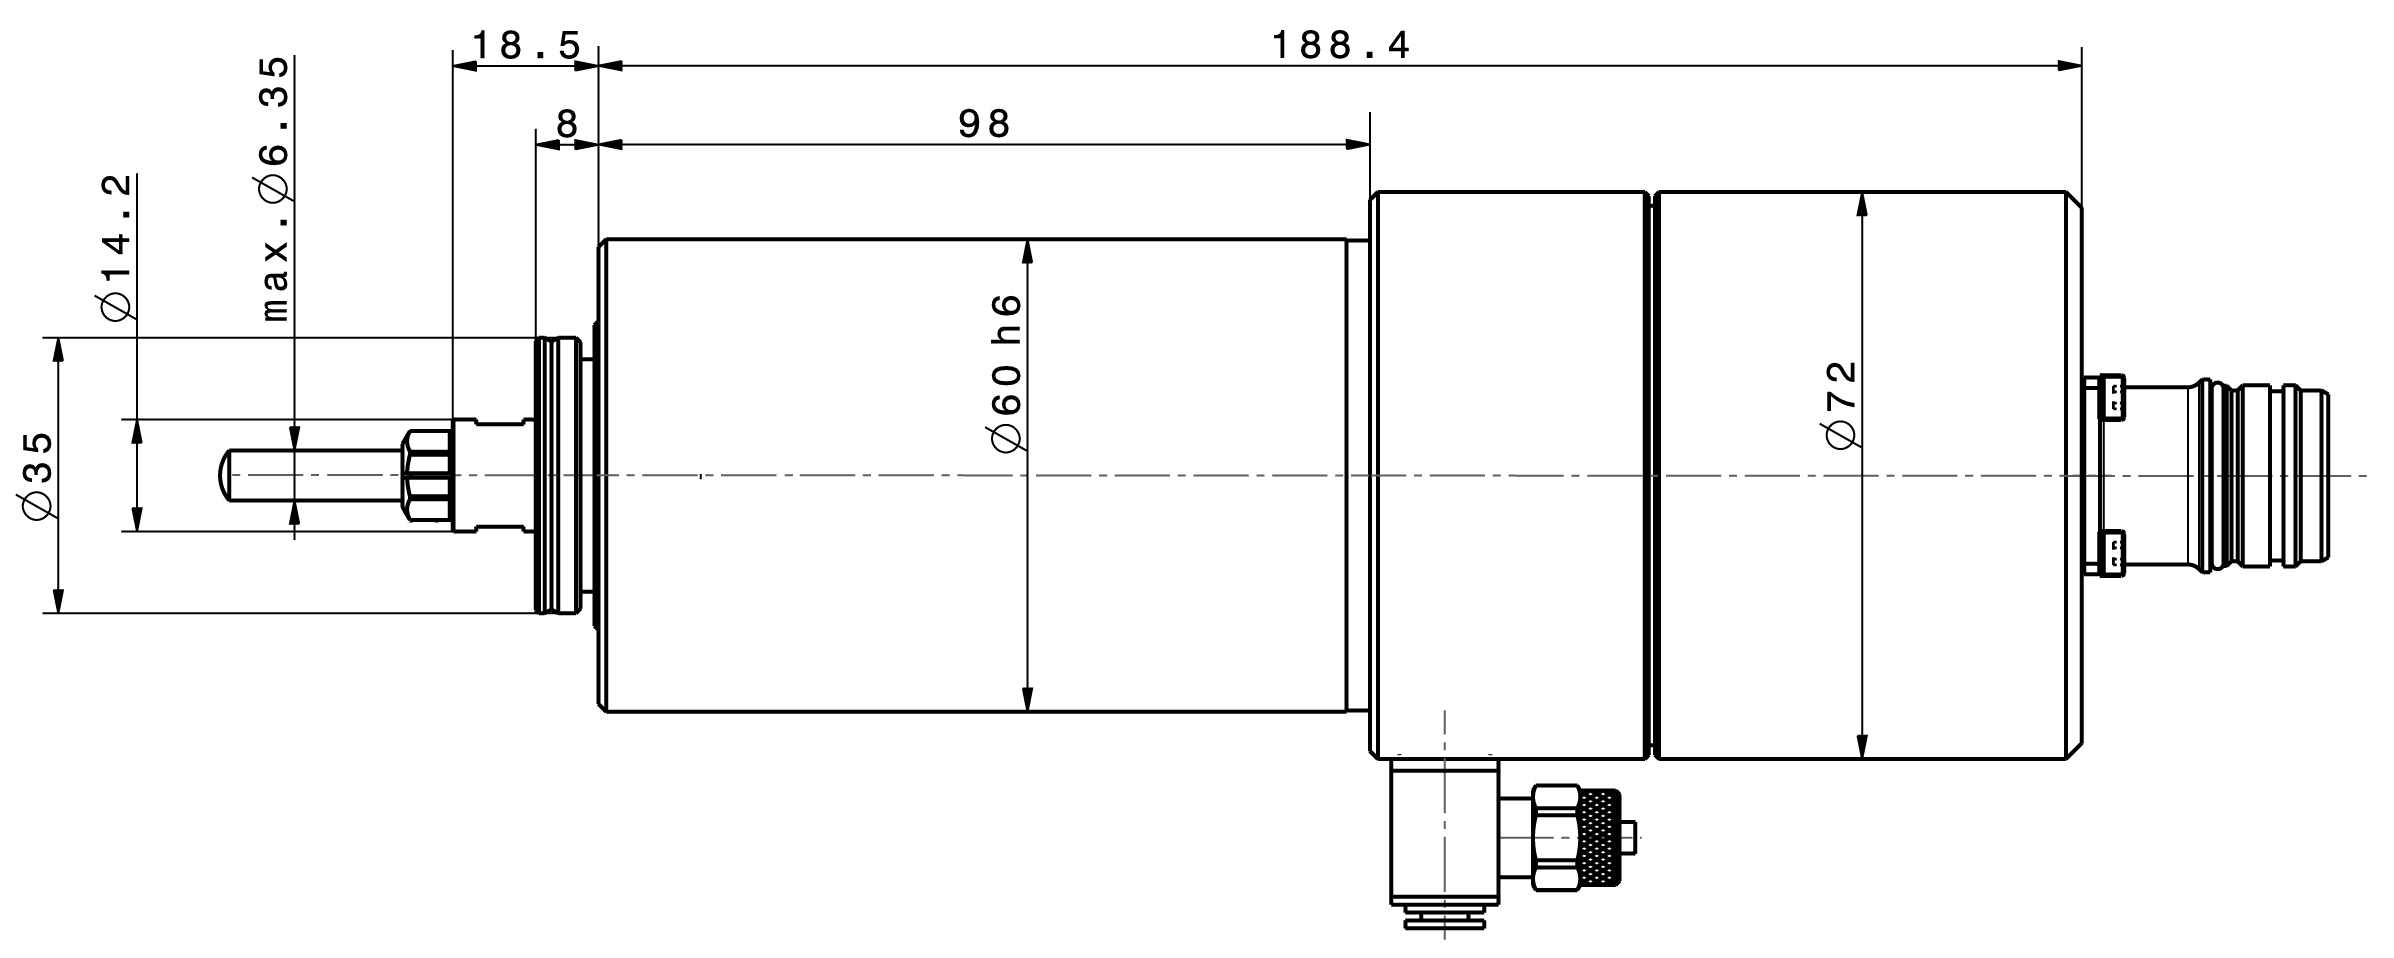 Type 4060 AC-T dimensions